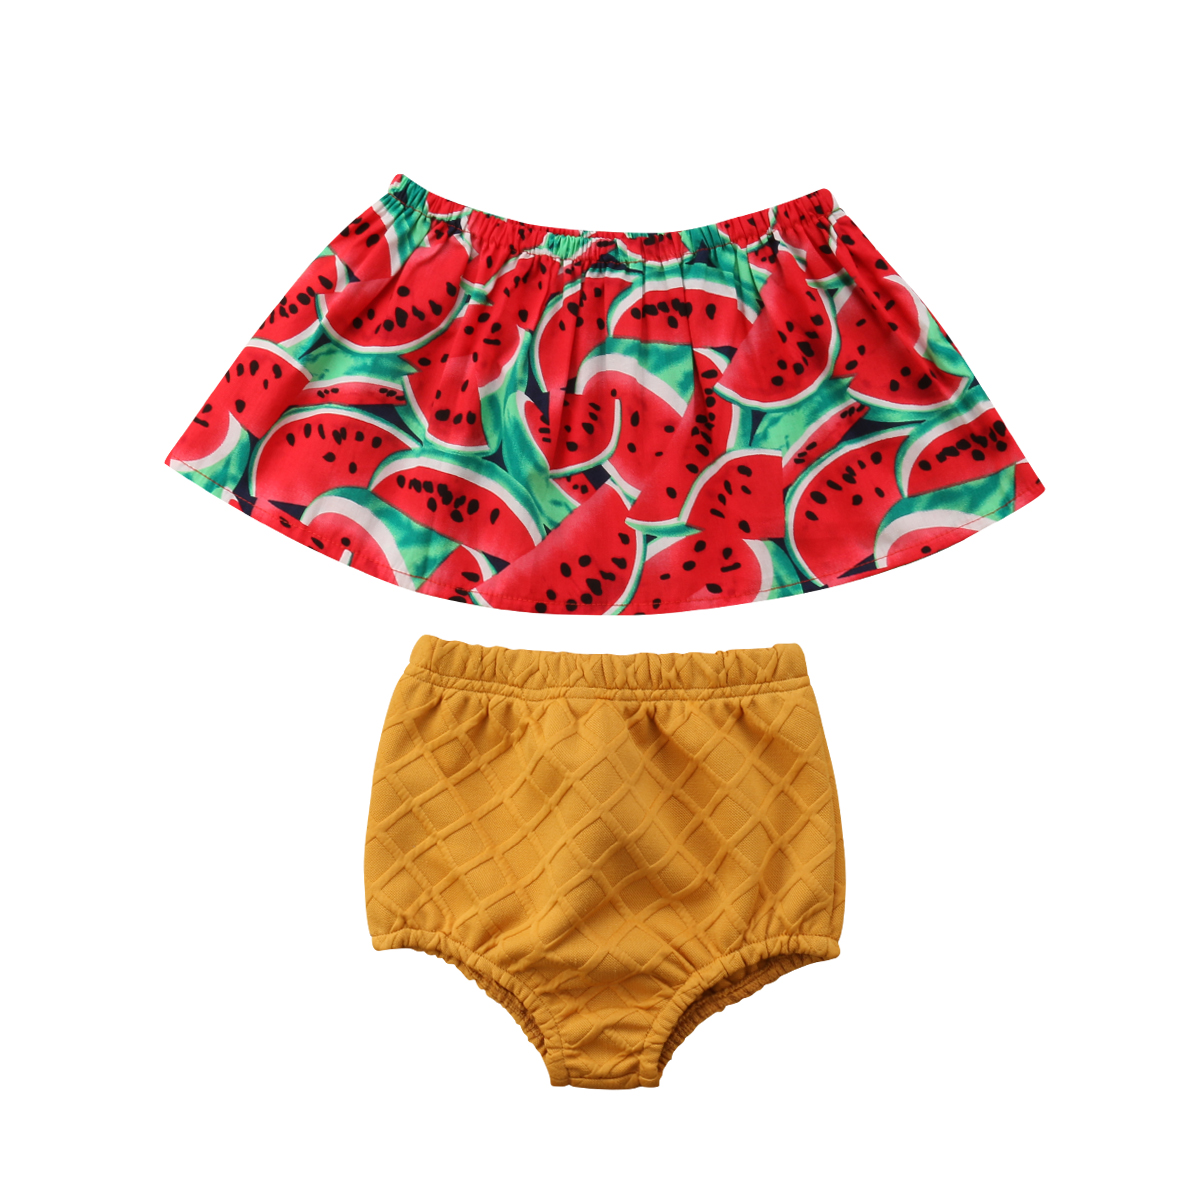 2PCS Infant Baby Girl Kid Summer Hot Sale Clothes Off Shoulder Colorful Pattern Top+Shorts Pants Outfit Set